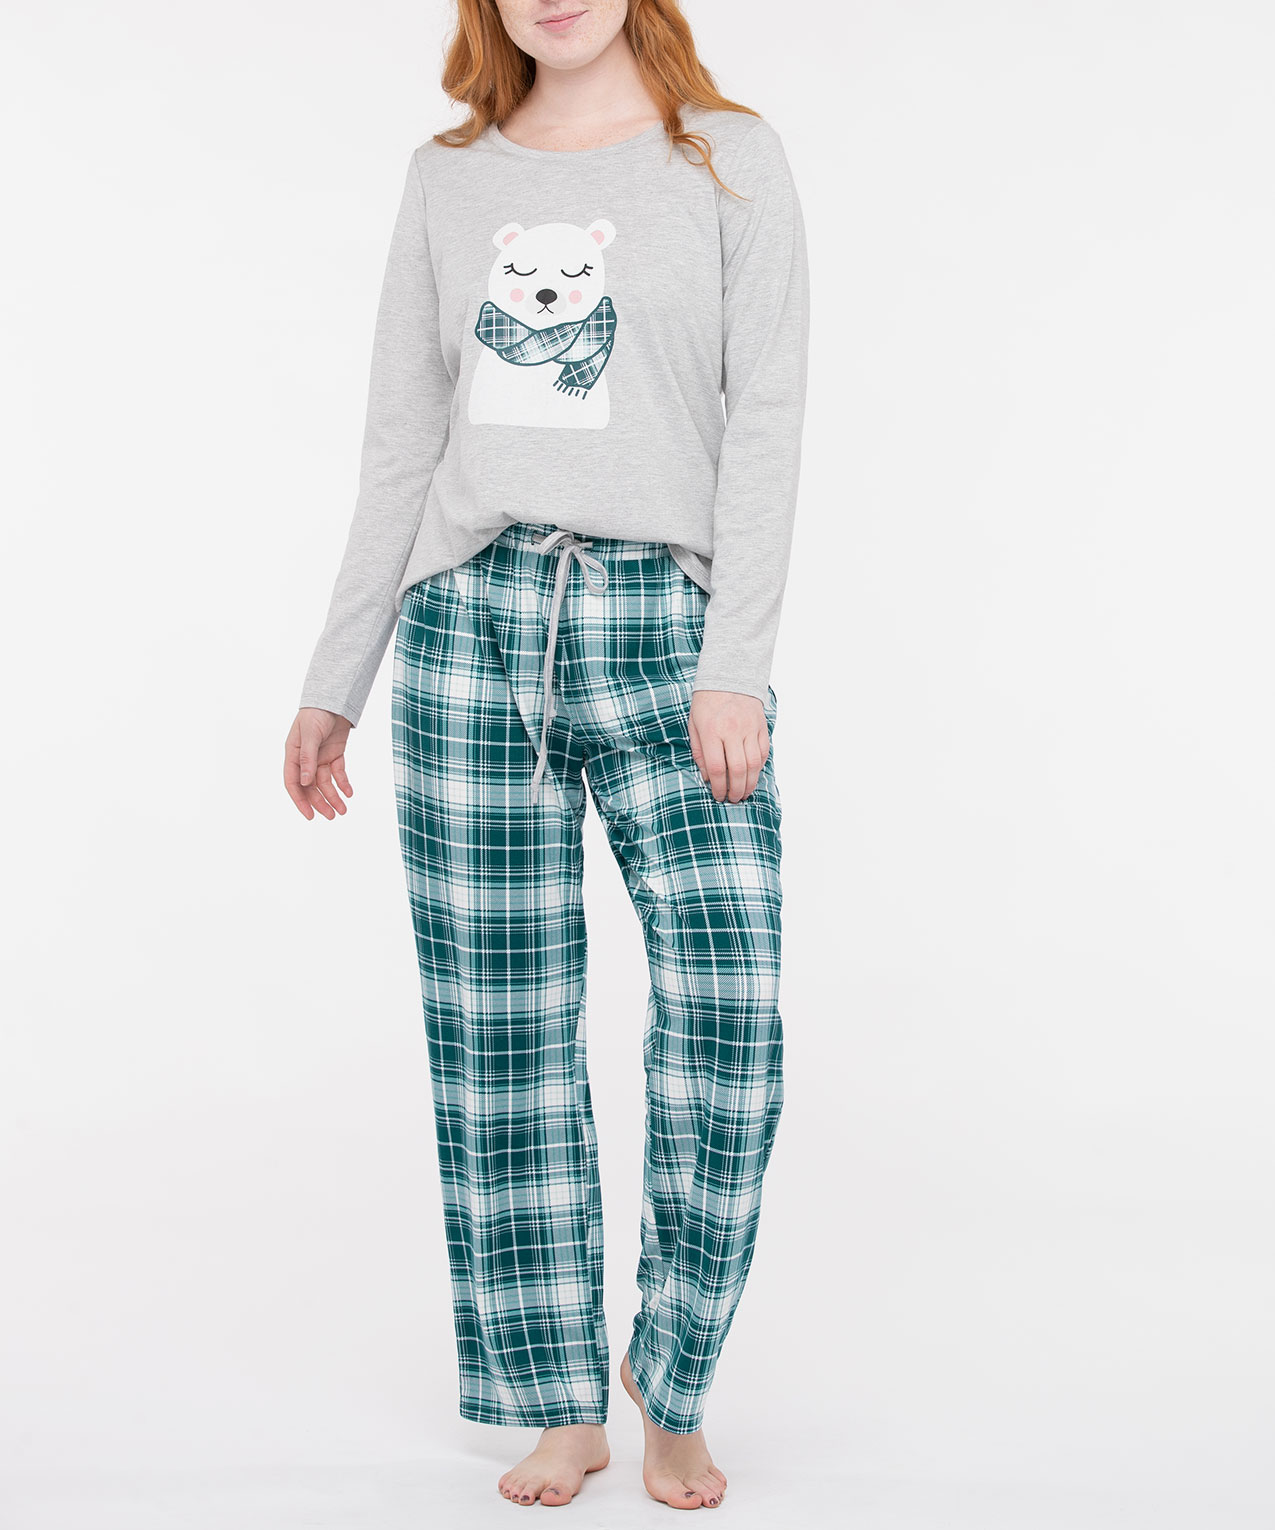 Polar Bear Screen Tee Pajamas, Light Heathered Grey/Dusty Pink/Teal, hi-res